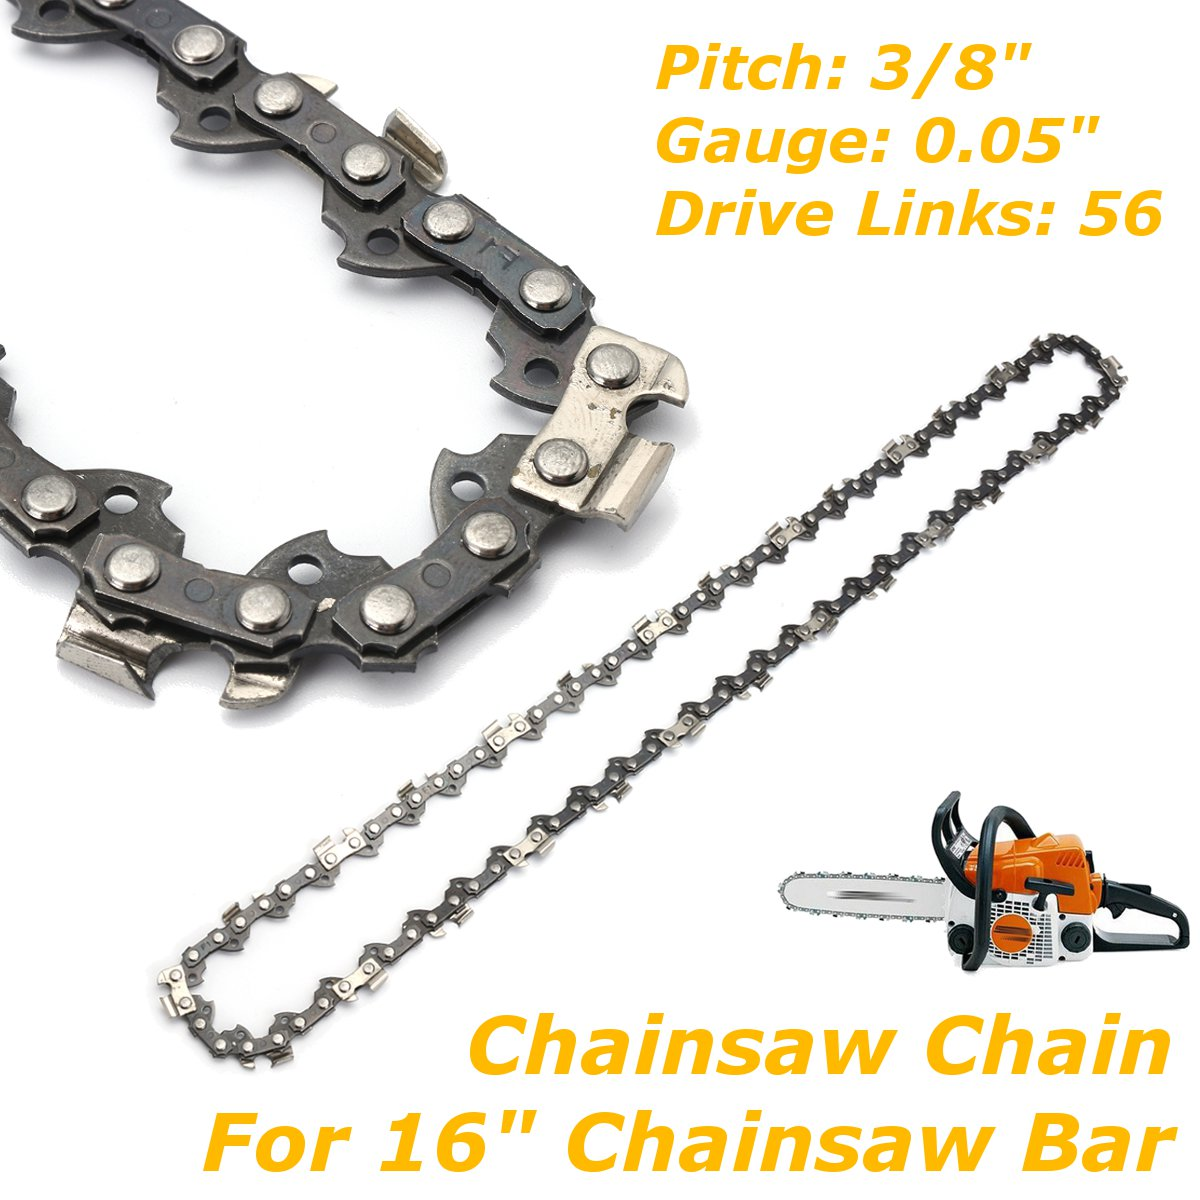 <font><b>Chainsaw</b></font> Chain For <font><b>16</b></font> <font><b>Inch</b></font> Chain Saw <font><b>Bar</b></font> Pitch 3/8 <font><b>Inch</b></font> Gauge 0.05 <font><b>Inch</b></font> 56 Drive Rod For Electric Saw image